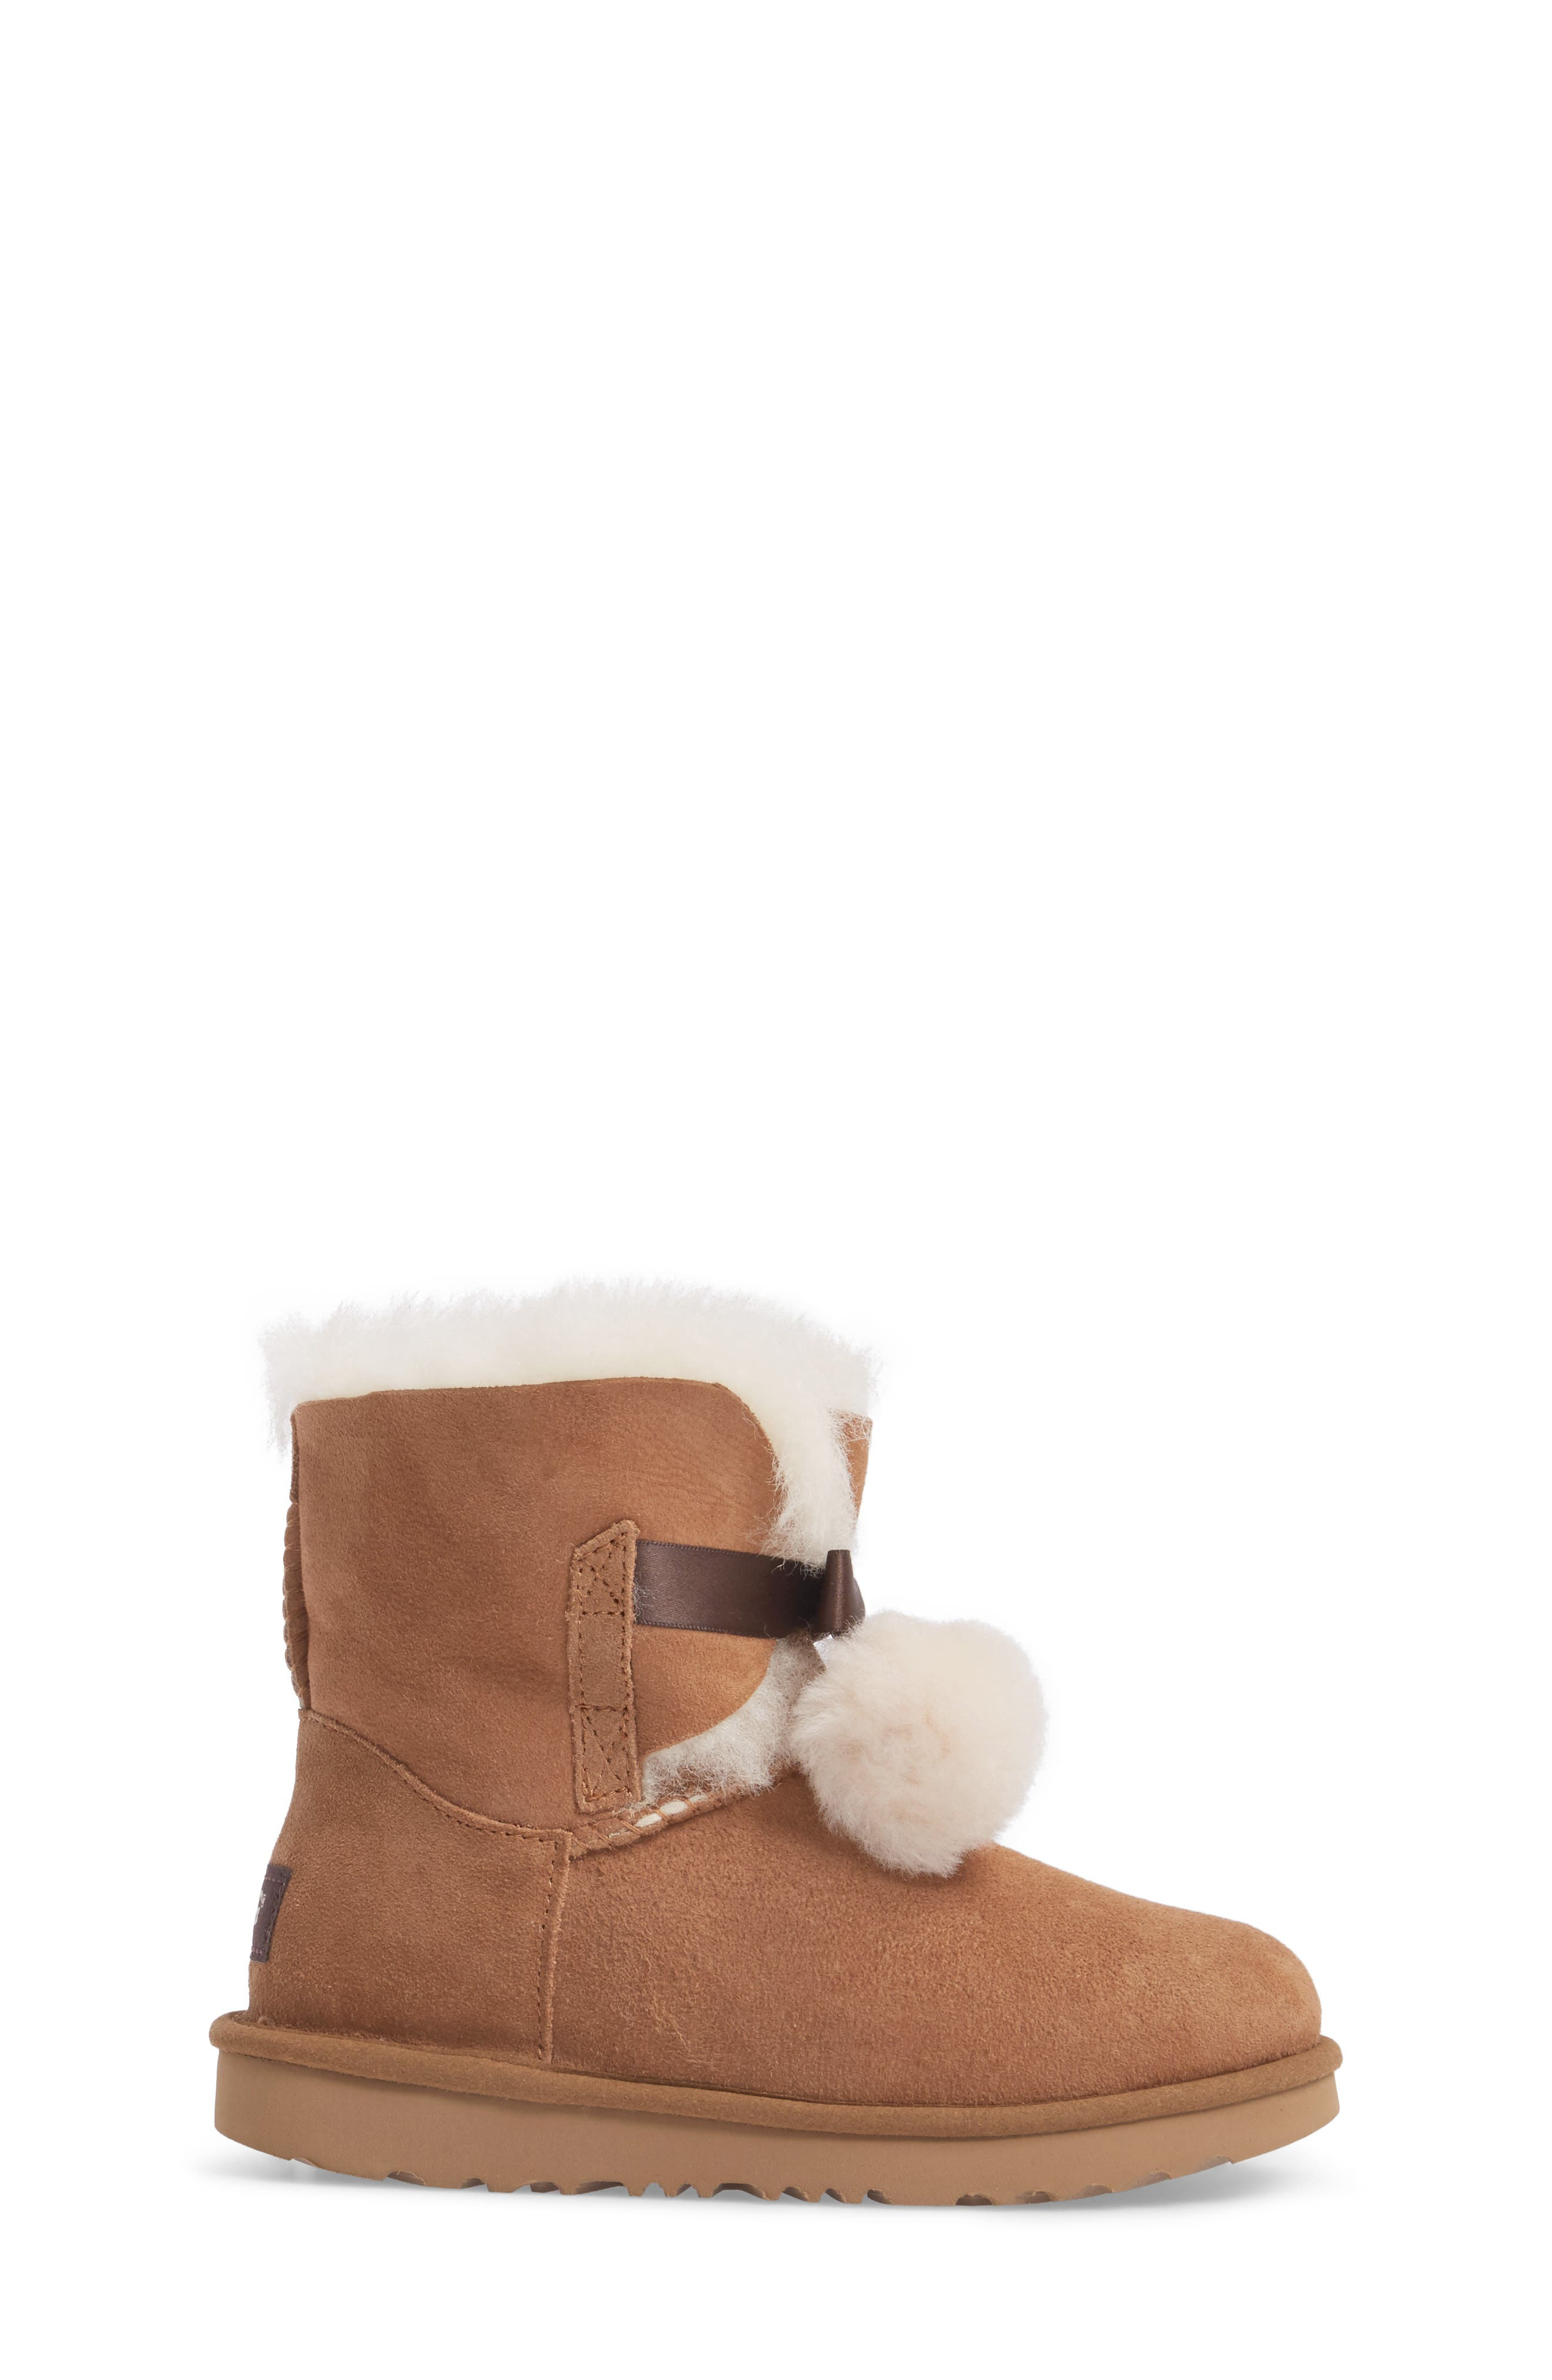 UGG<SUP>®</SUP>, Gita Water-Resistant Genuine Shearling Pom Boot, Alternate thumbnail 3, color, CHESTNUT